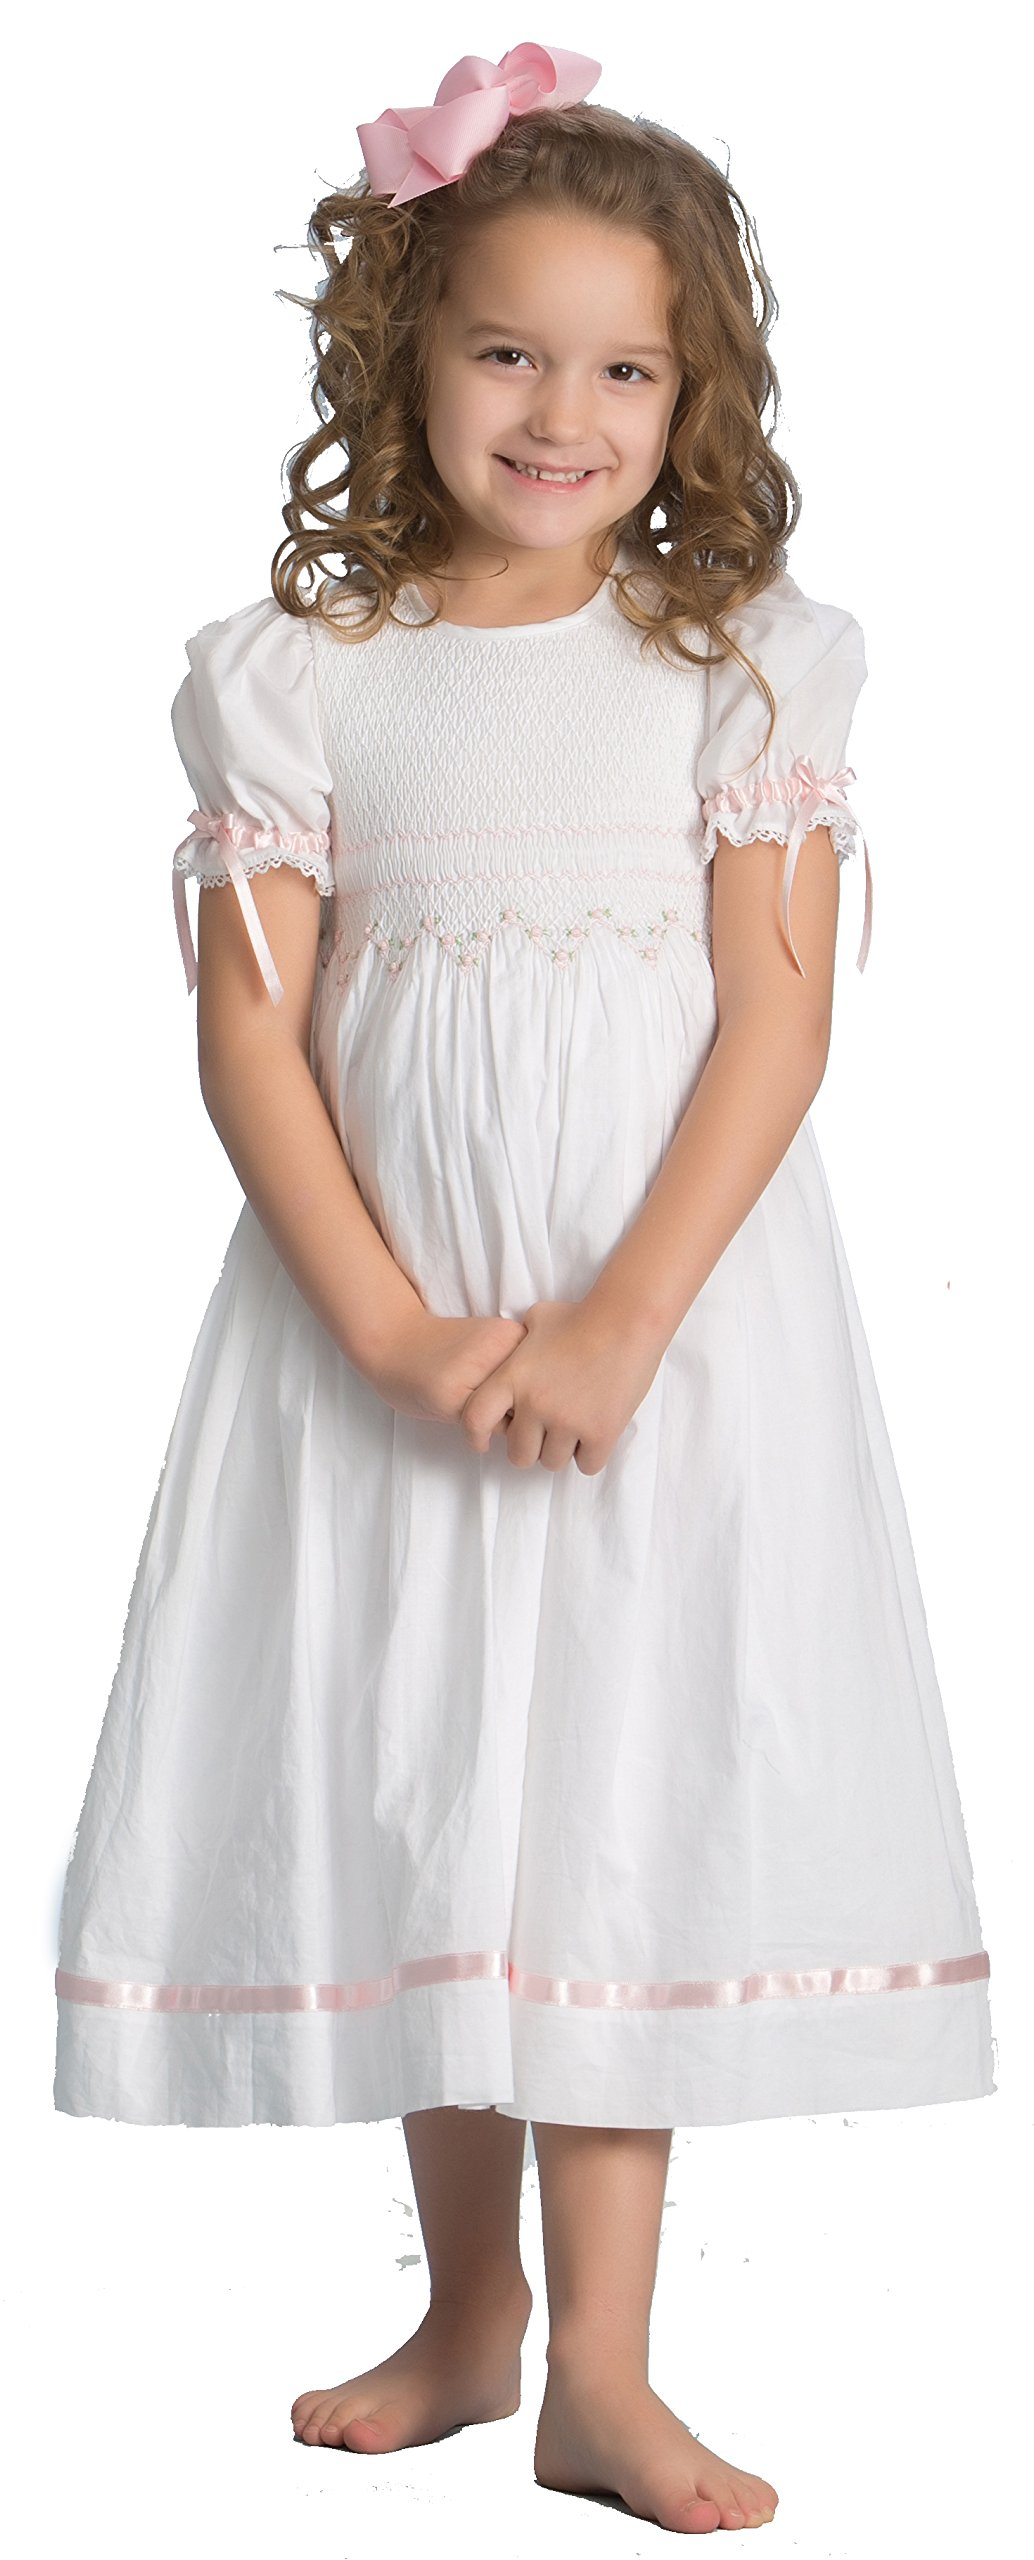 Strasburg Children Girls' Ava Smocked Dress White (5)